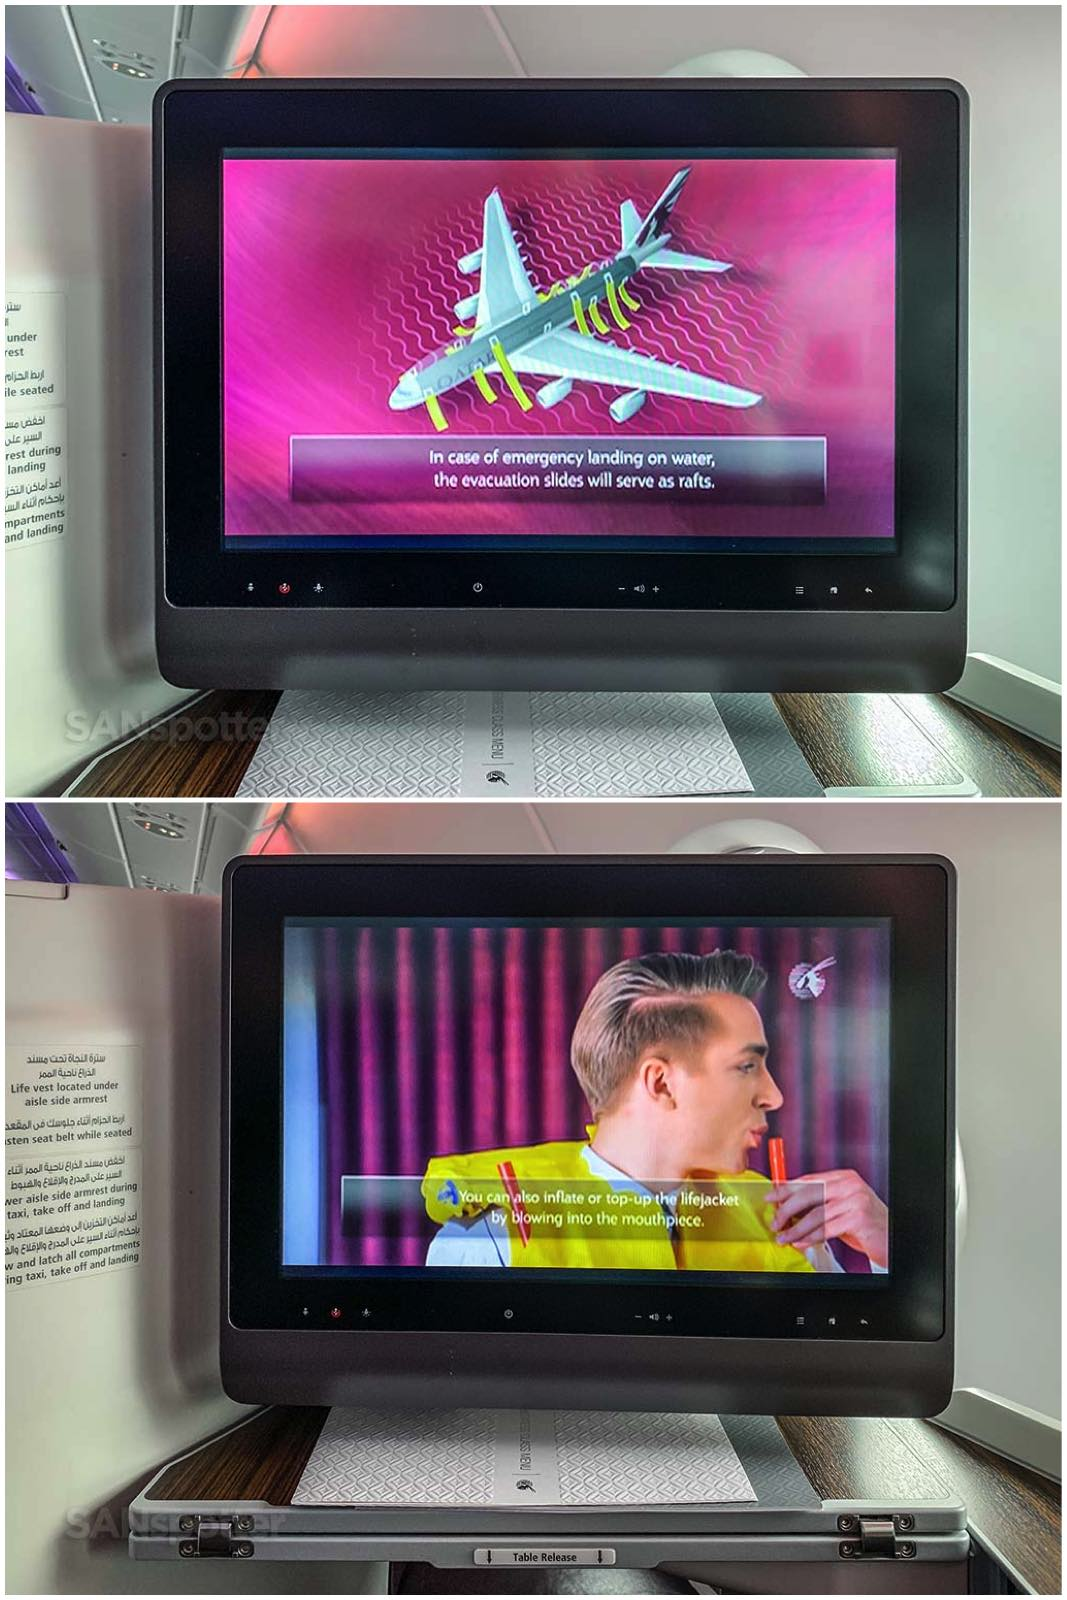 Qatar Airways a380 safety video